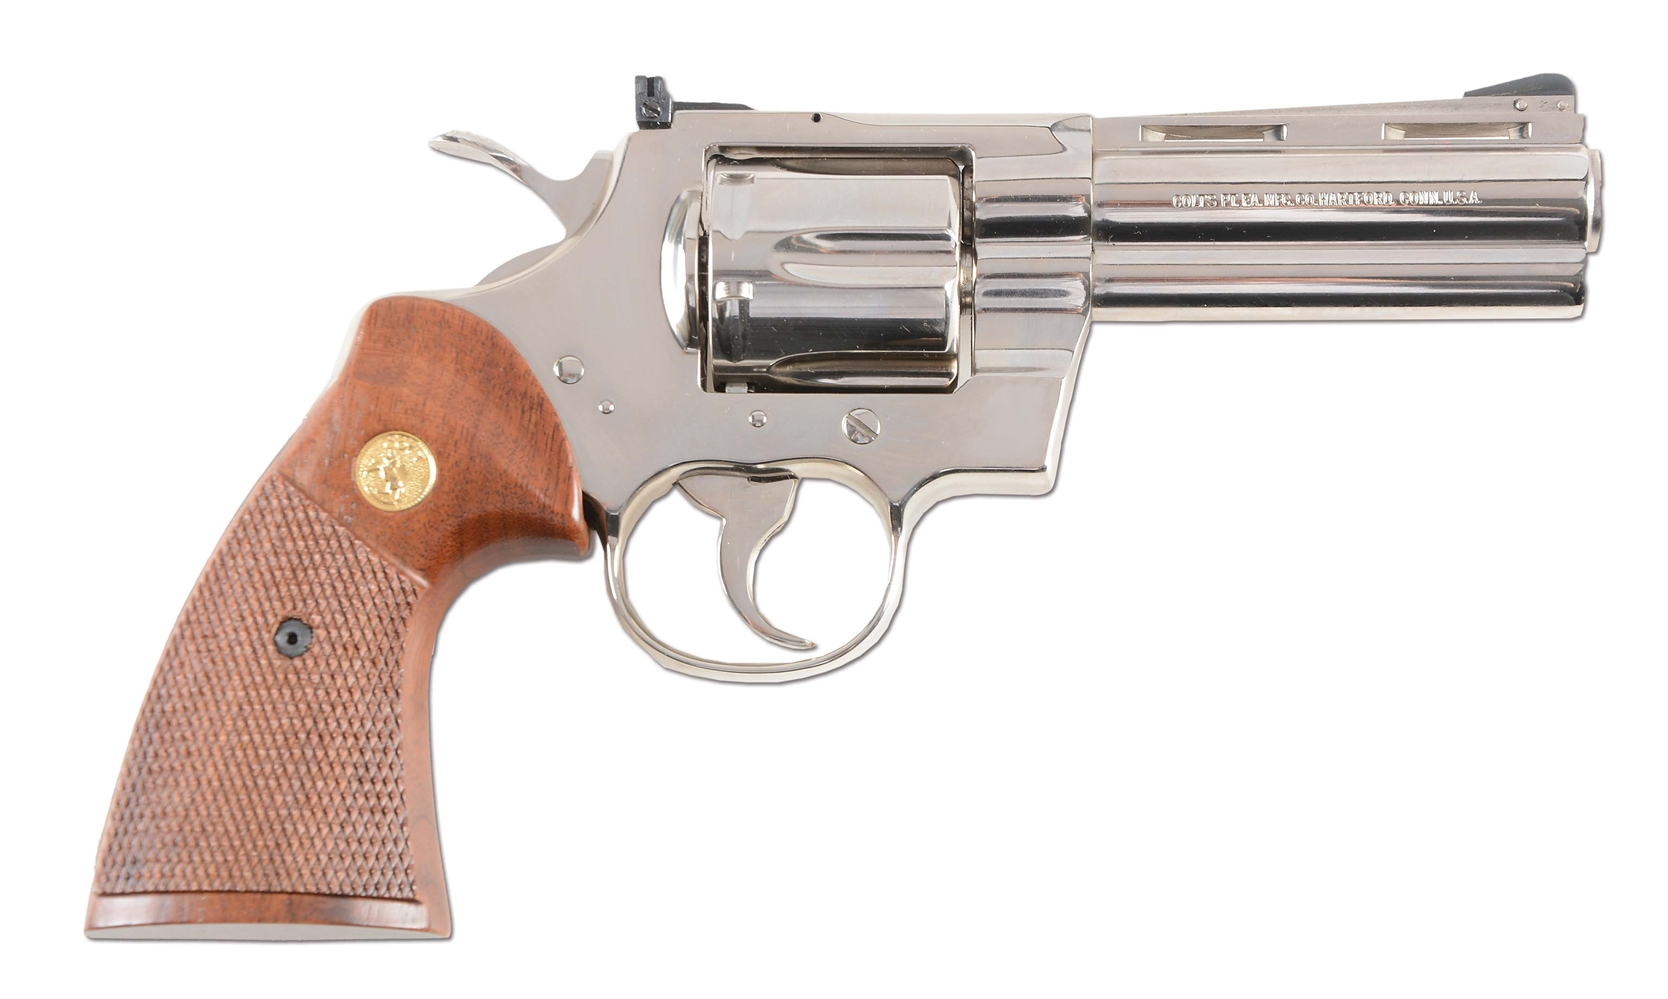 (M) Boxed Nickel Colt Python Double Action Revolver (1981).